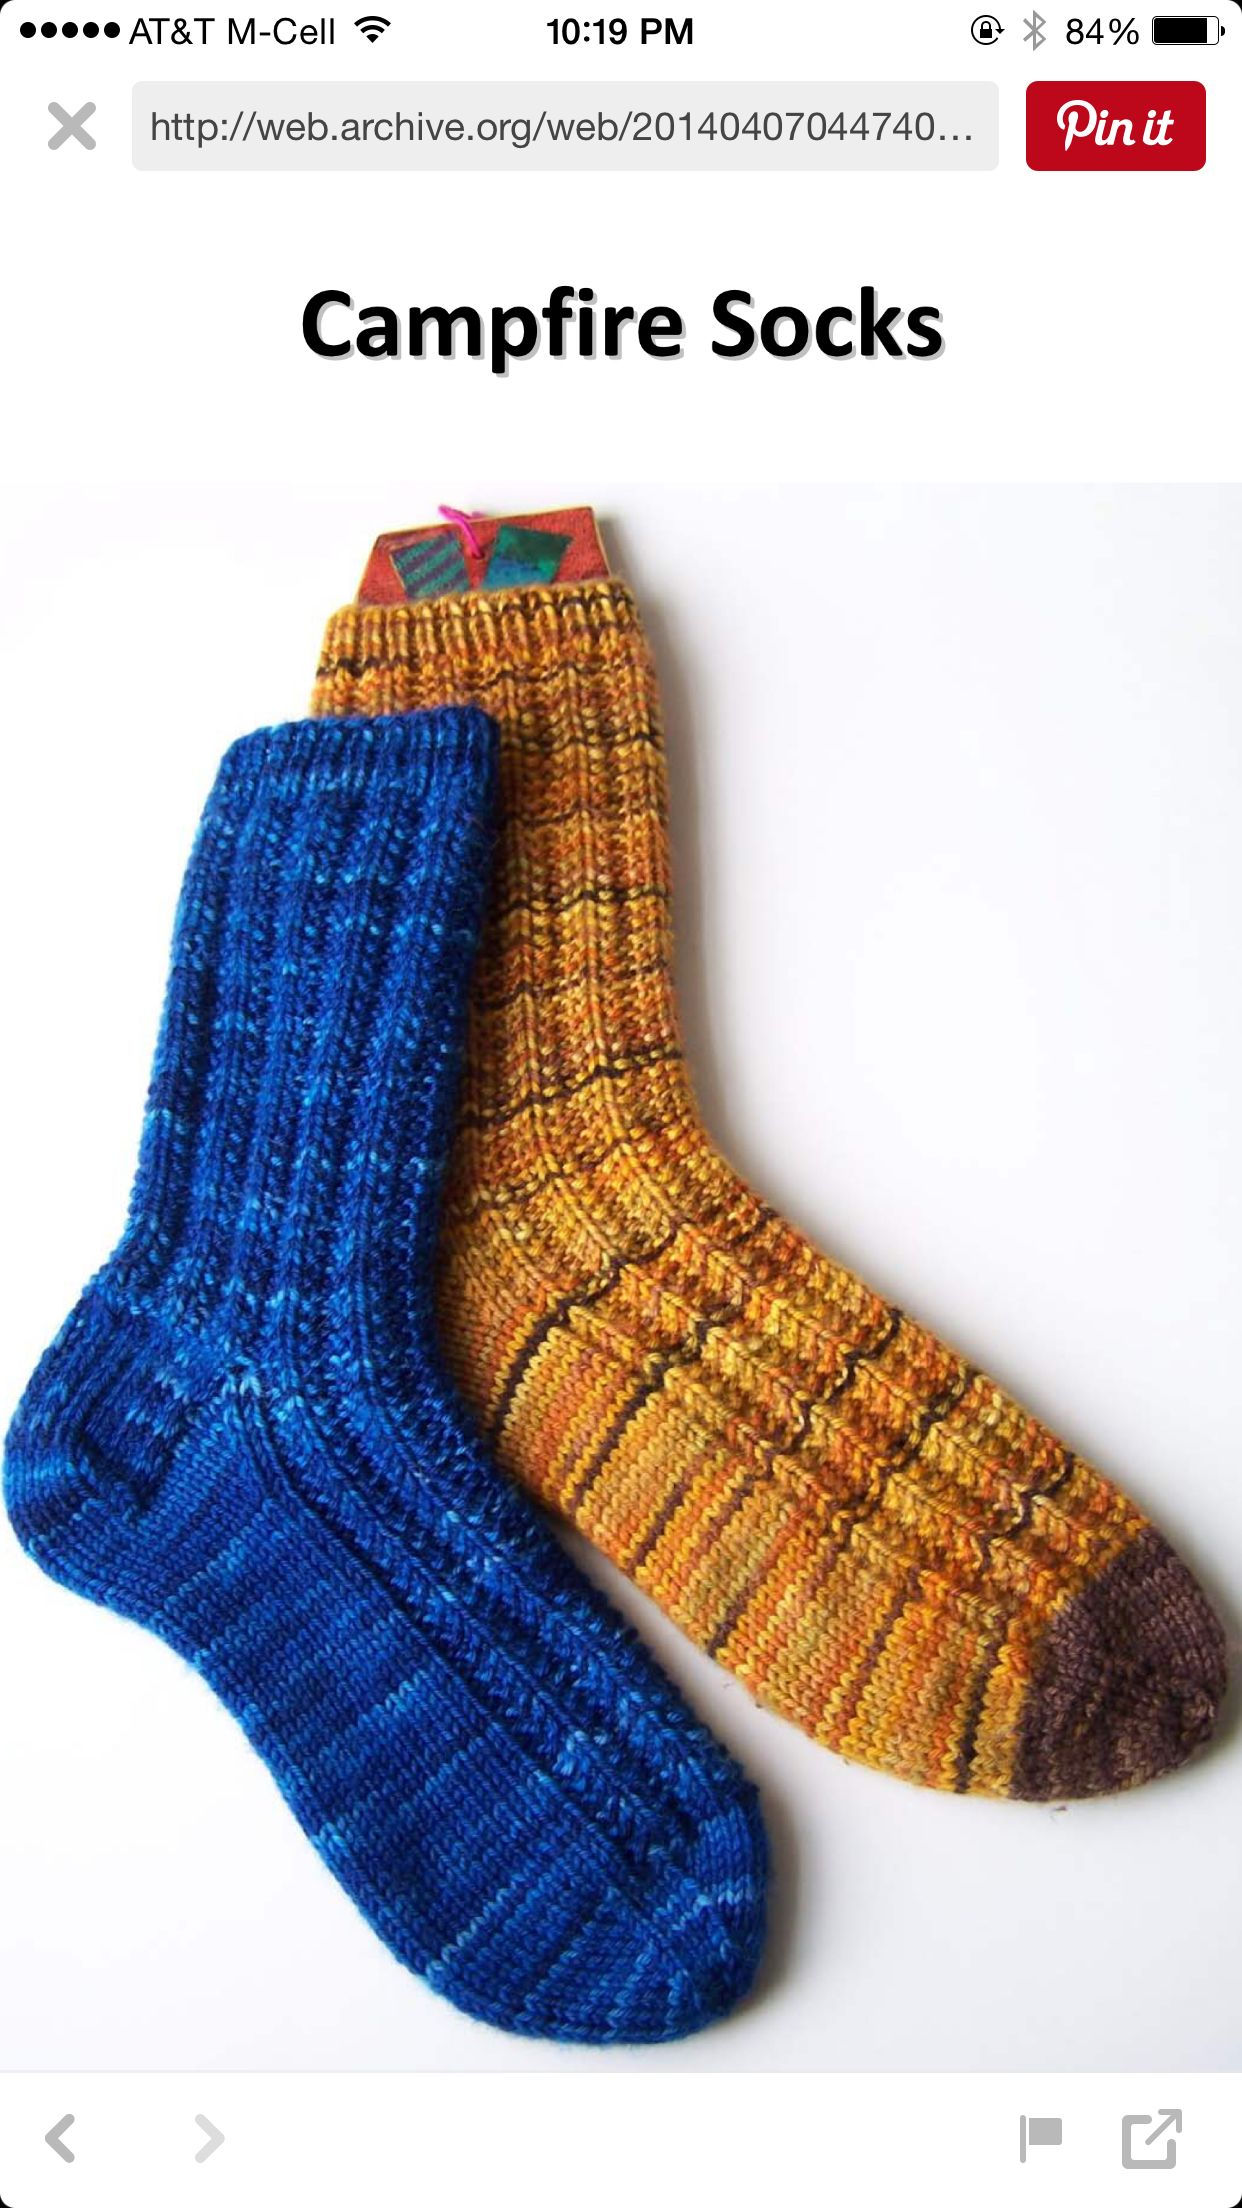 Campfire socks pattern | Crafting | Pinterest | Campfires, Patterns ...